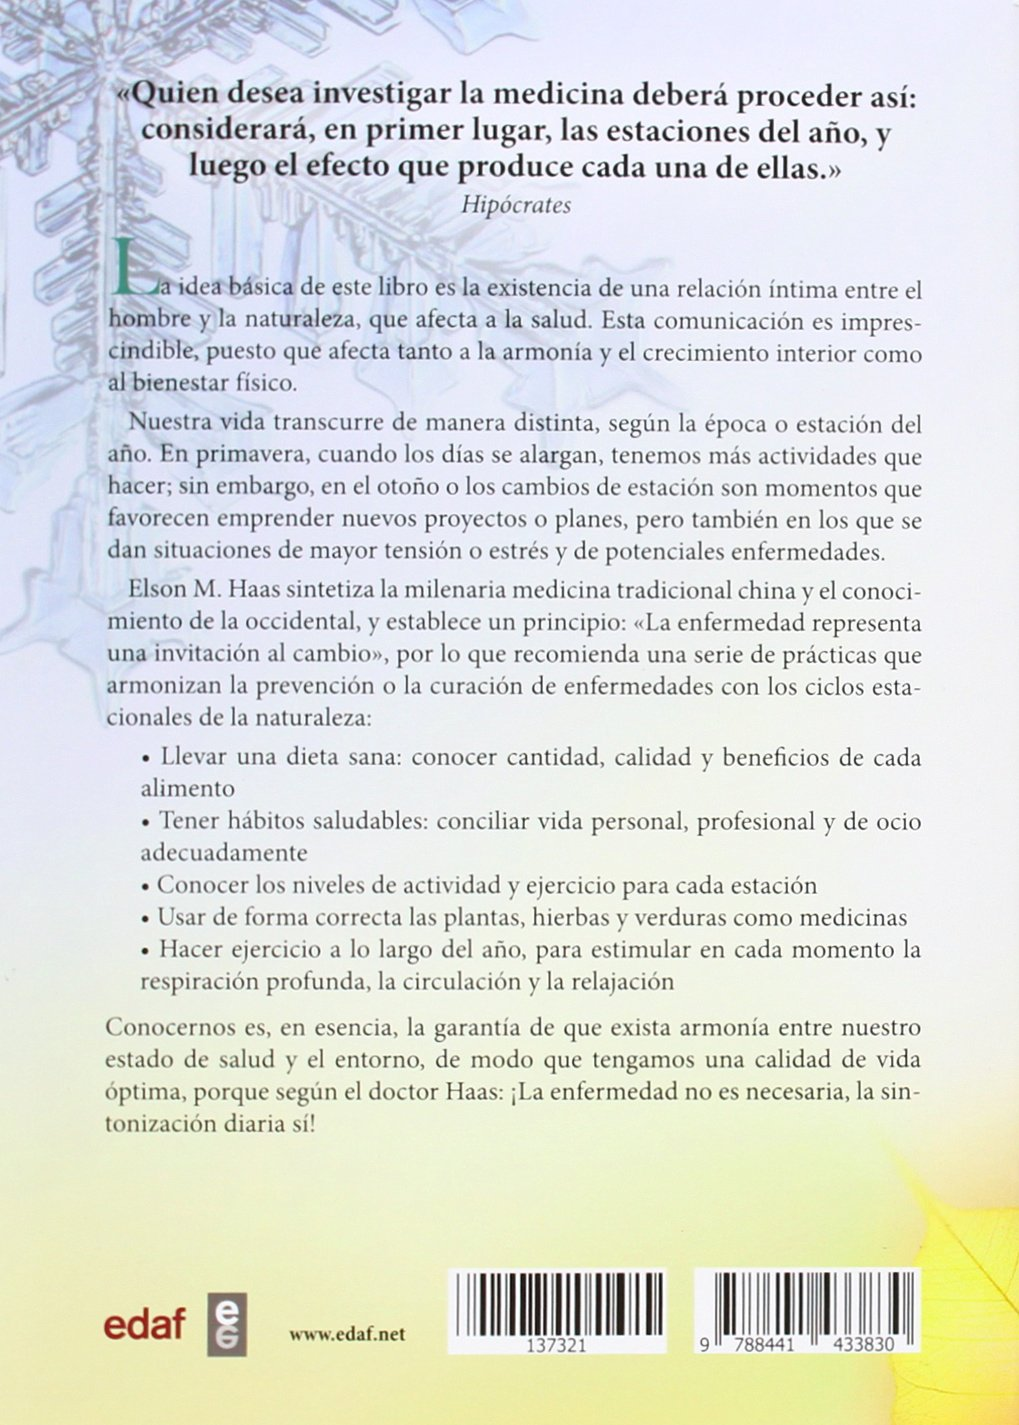 La salud y las estaciones (Ana Maria Lajusticia) (Spanish Edition): Elson M. Haas: 9788441433830: Amazon.com: Books